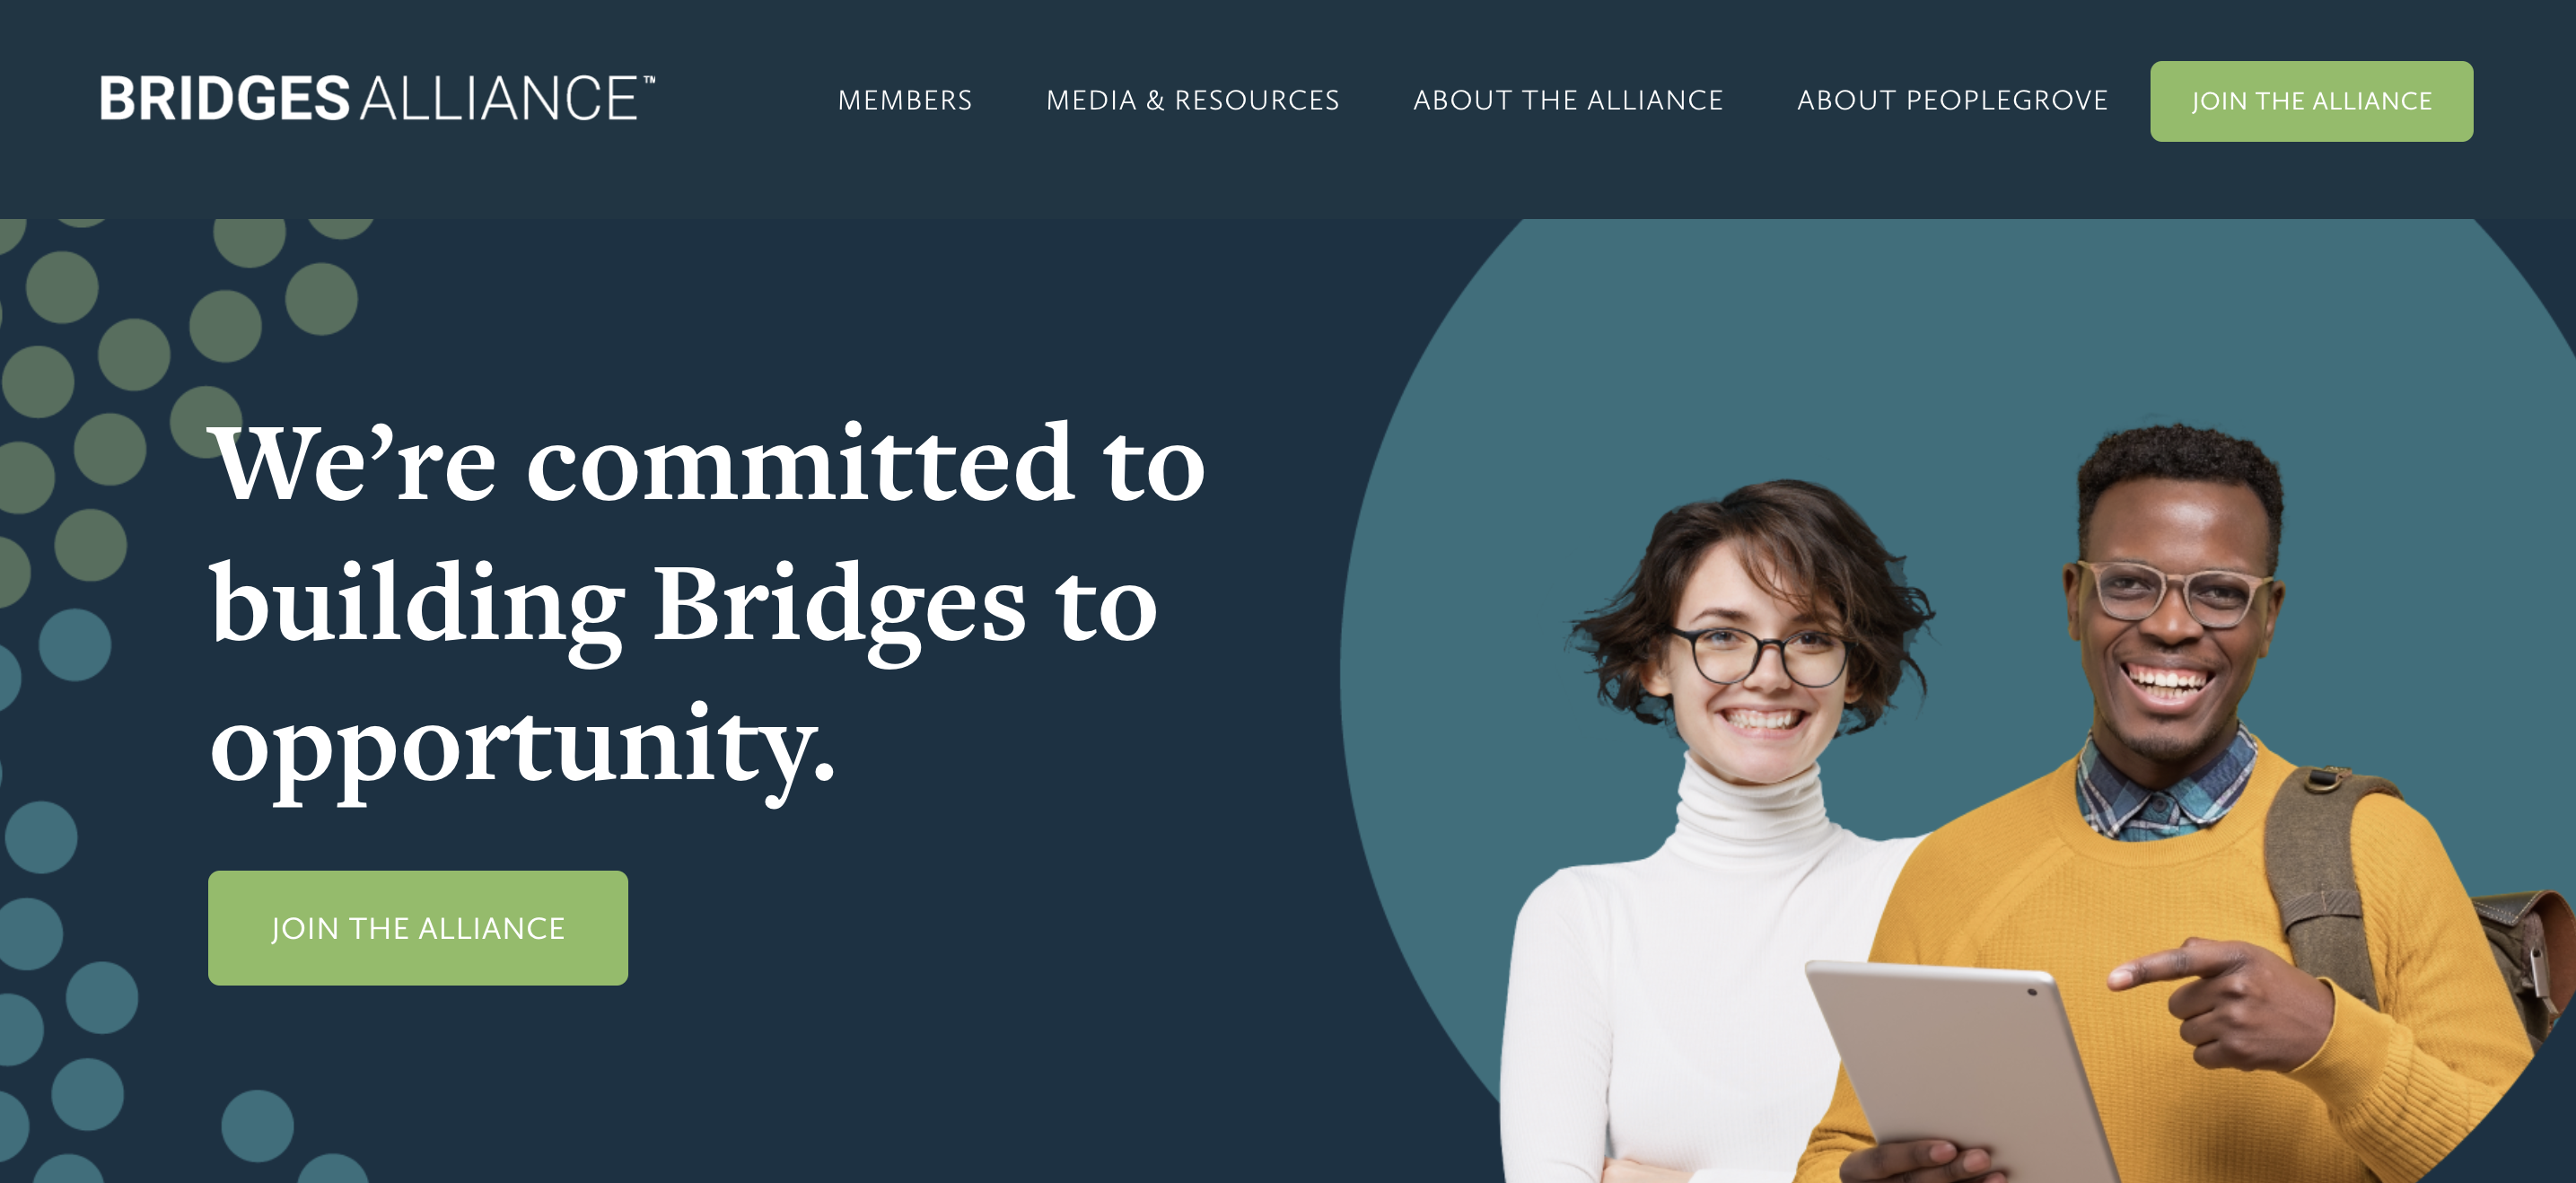 40 Universities Form 'BridgesAlliance' to Address Workforce Barriers